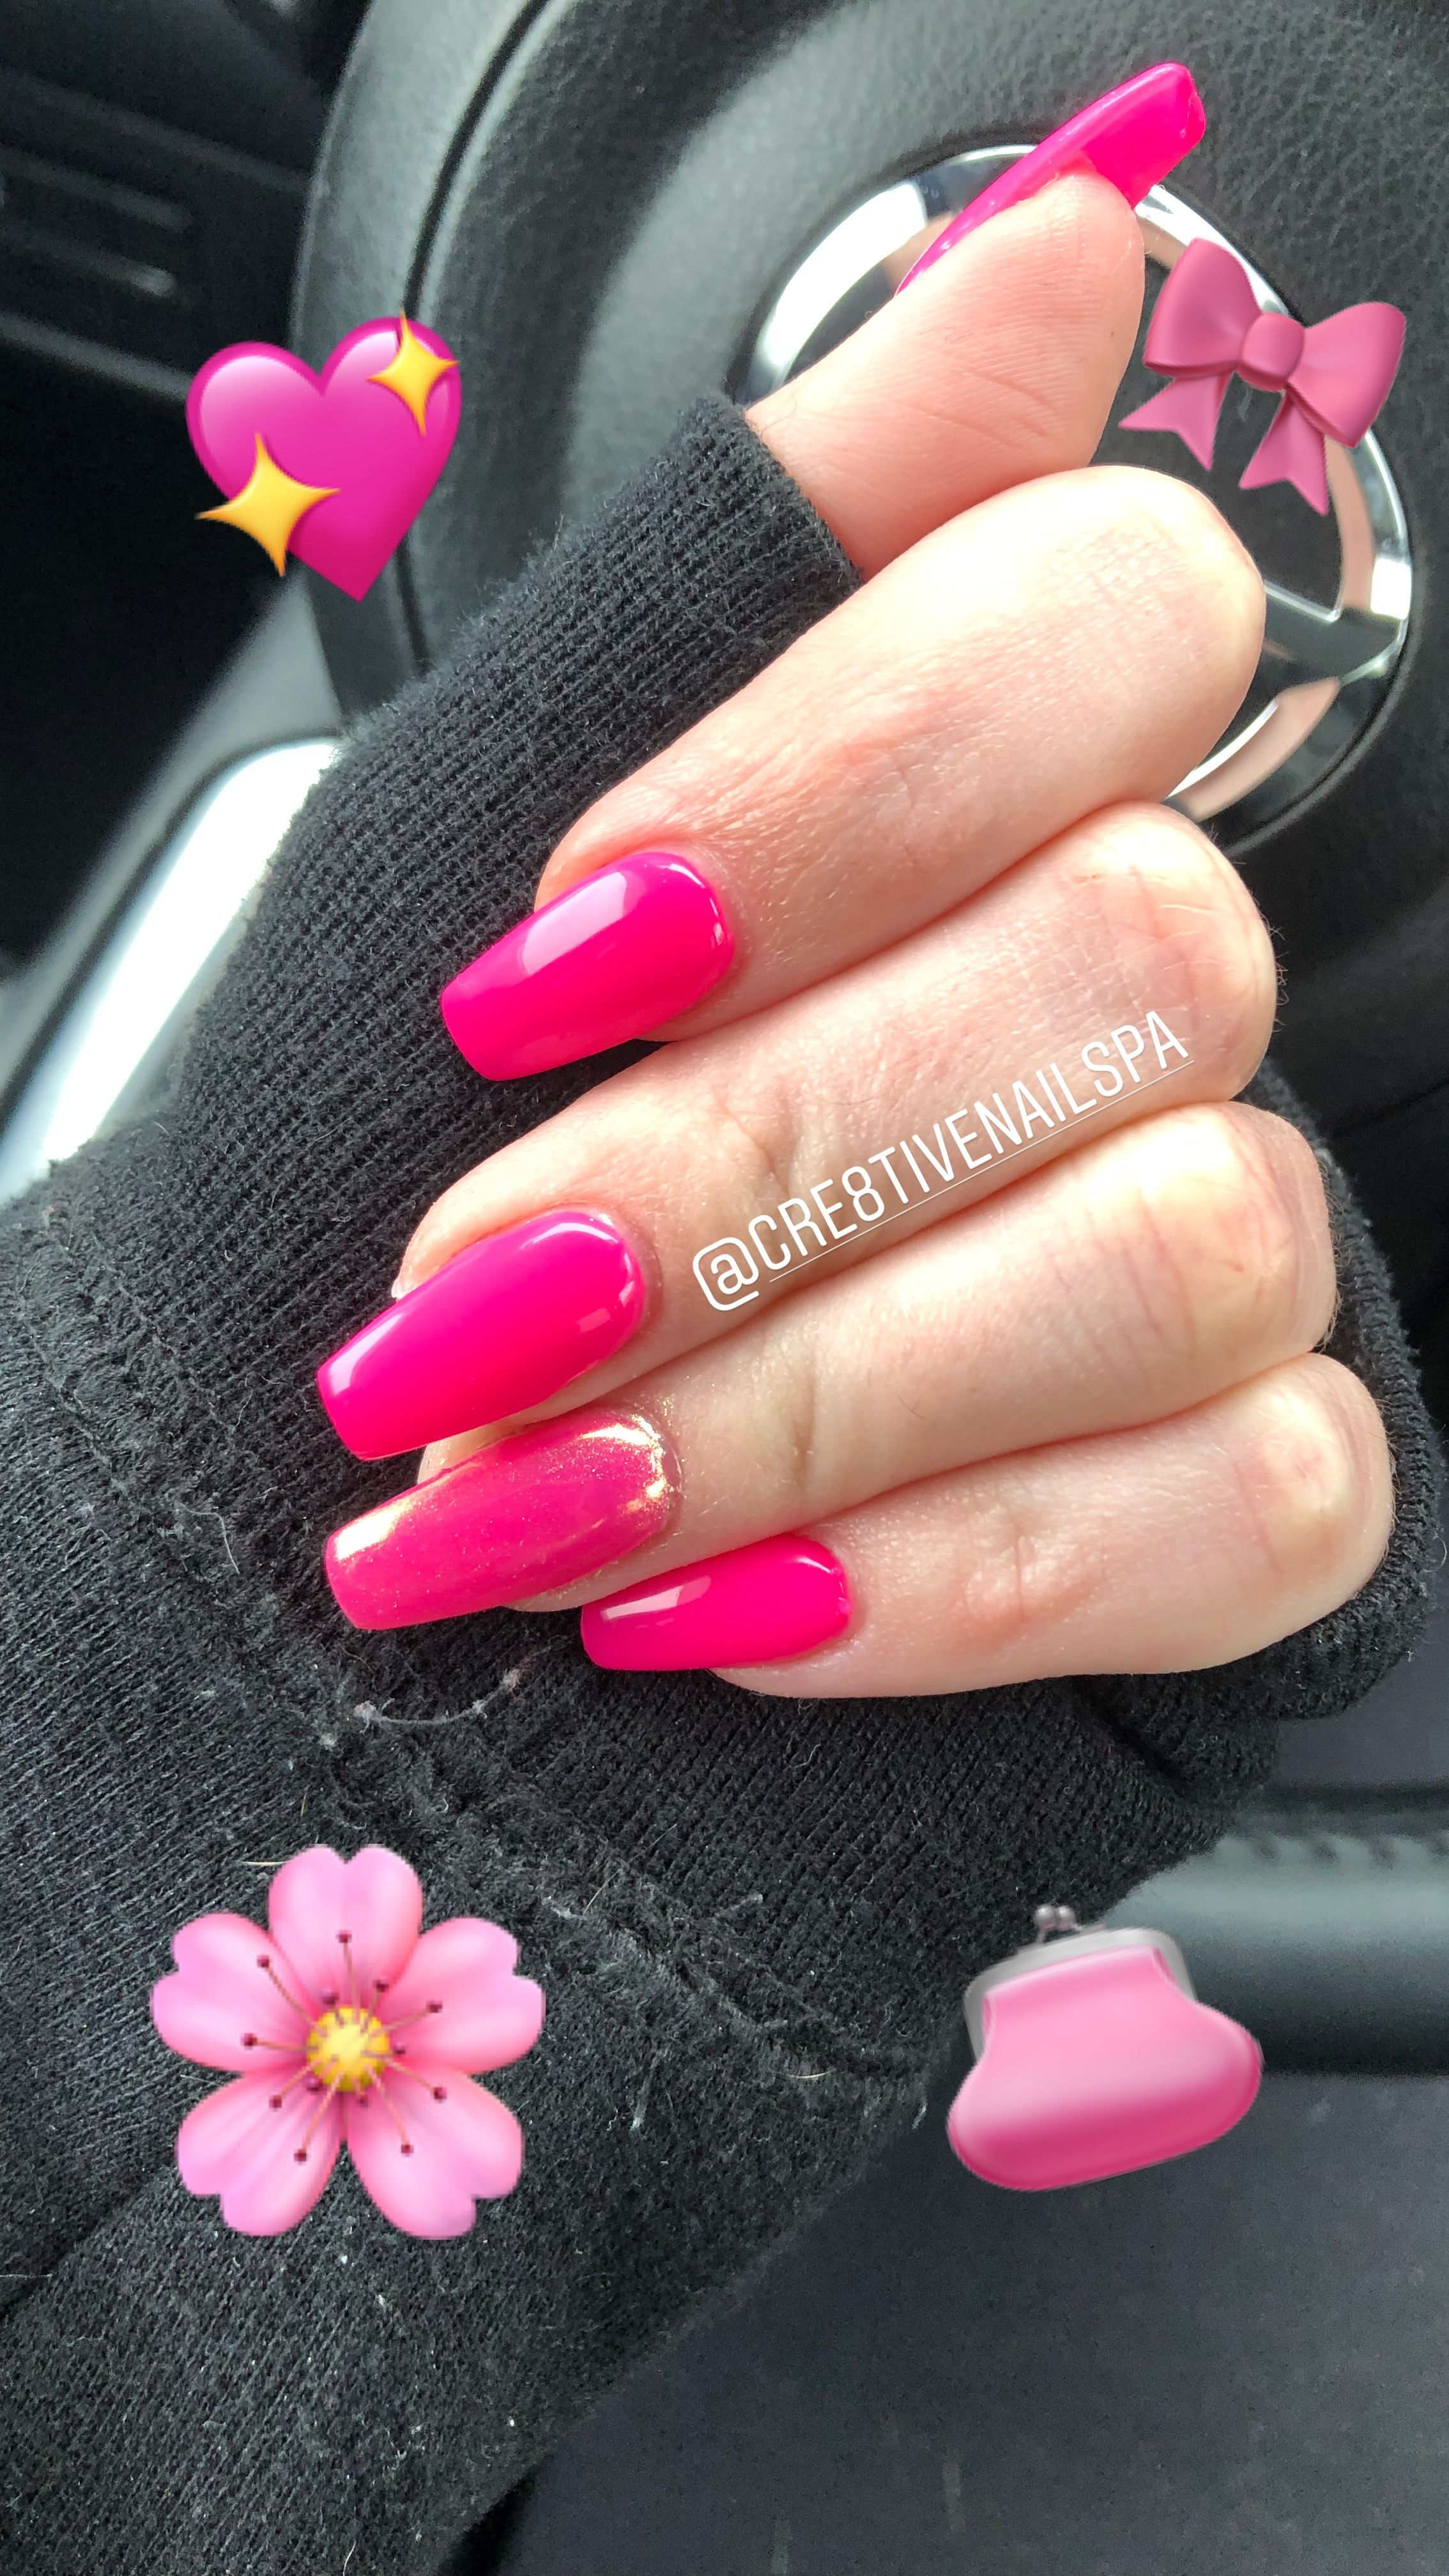 Neon Pink Acrylic Nails Short Coffin - NailsTip